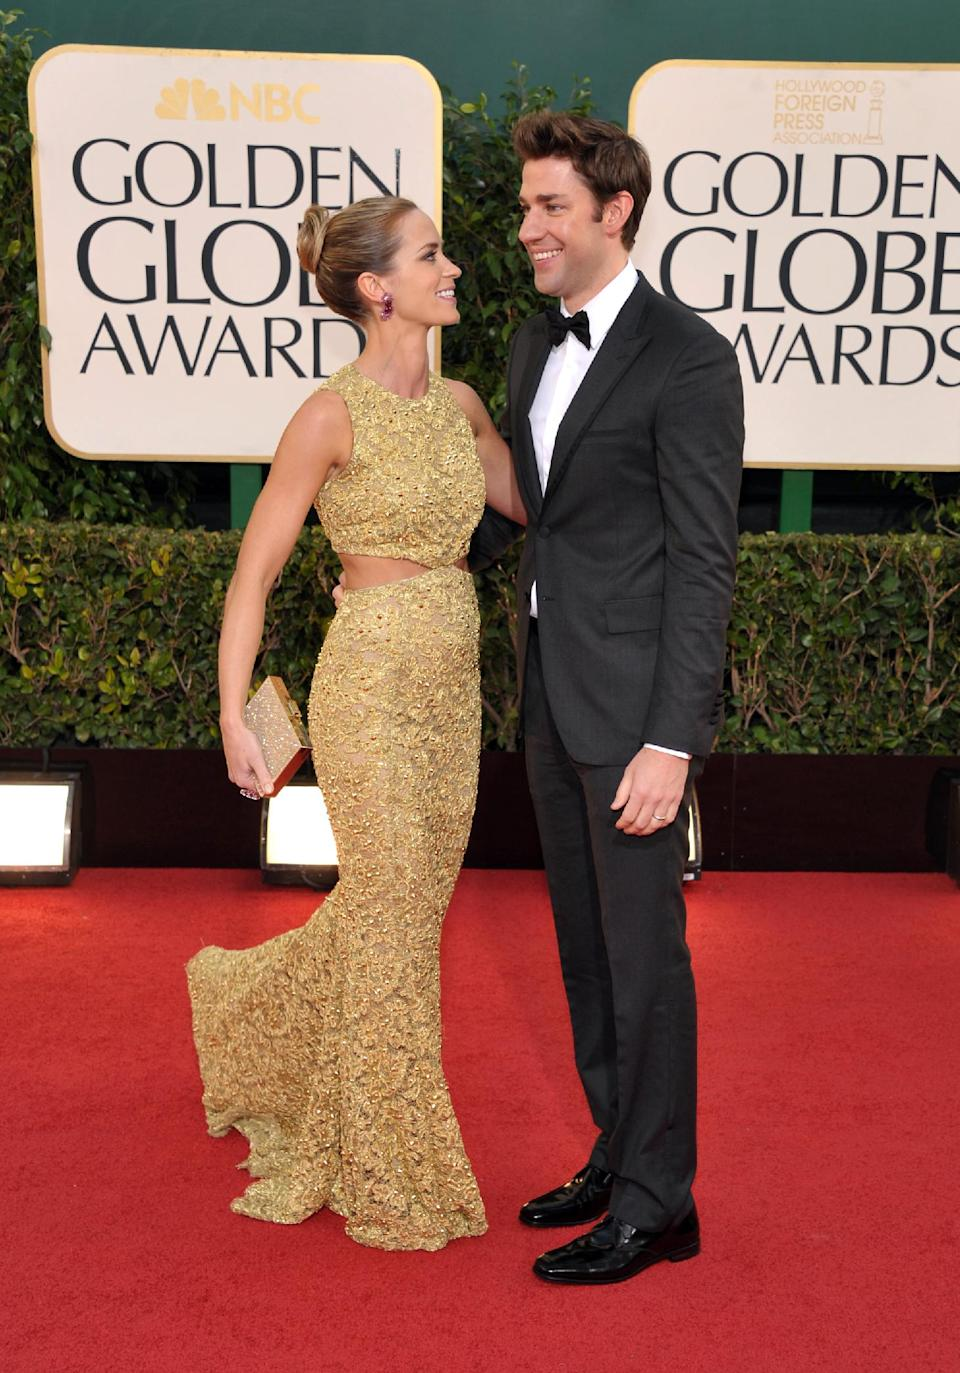 Actress Emily Blunt, left, and actor John Krasinski arrive at the 70th Annual Golden Globe Awards at the Beverly Hilton Hotel on Sunday Jan. 13, 2013, in Beverly Hills, Calif. (Photo by John Shearer/Invision/AP)